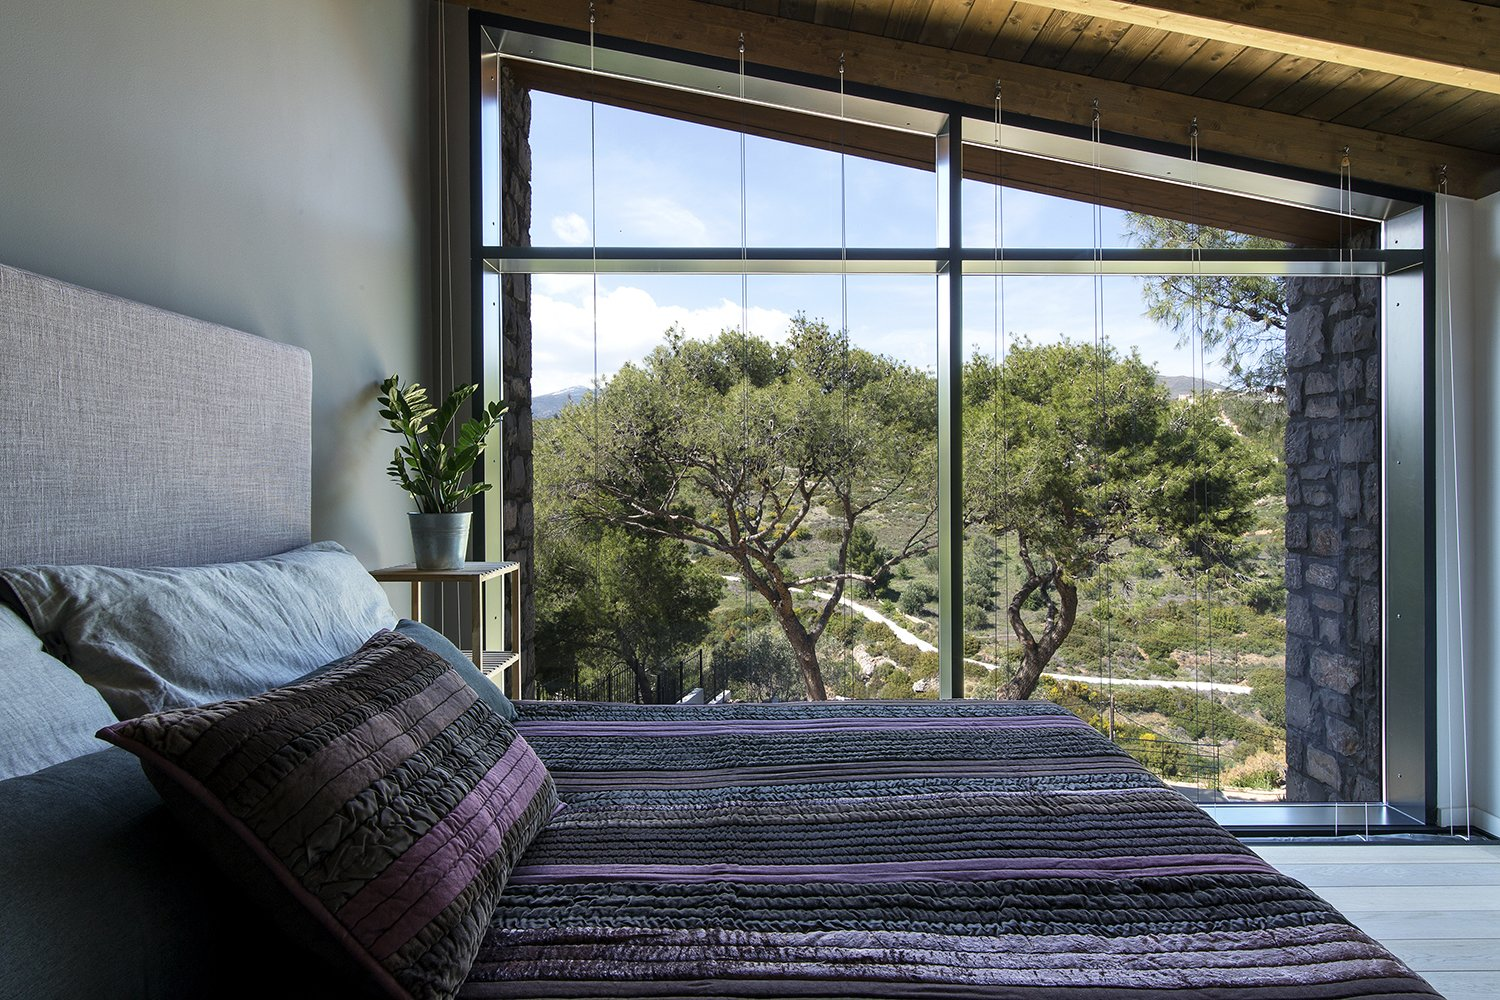 The facade opens up to the view of the pines trees concealing the boundary between the interior of the house and its surrounding environment  Tagged: Bedroom.  The Wedge House by Marianna Athanasiadou